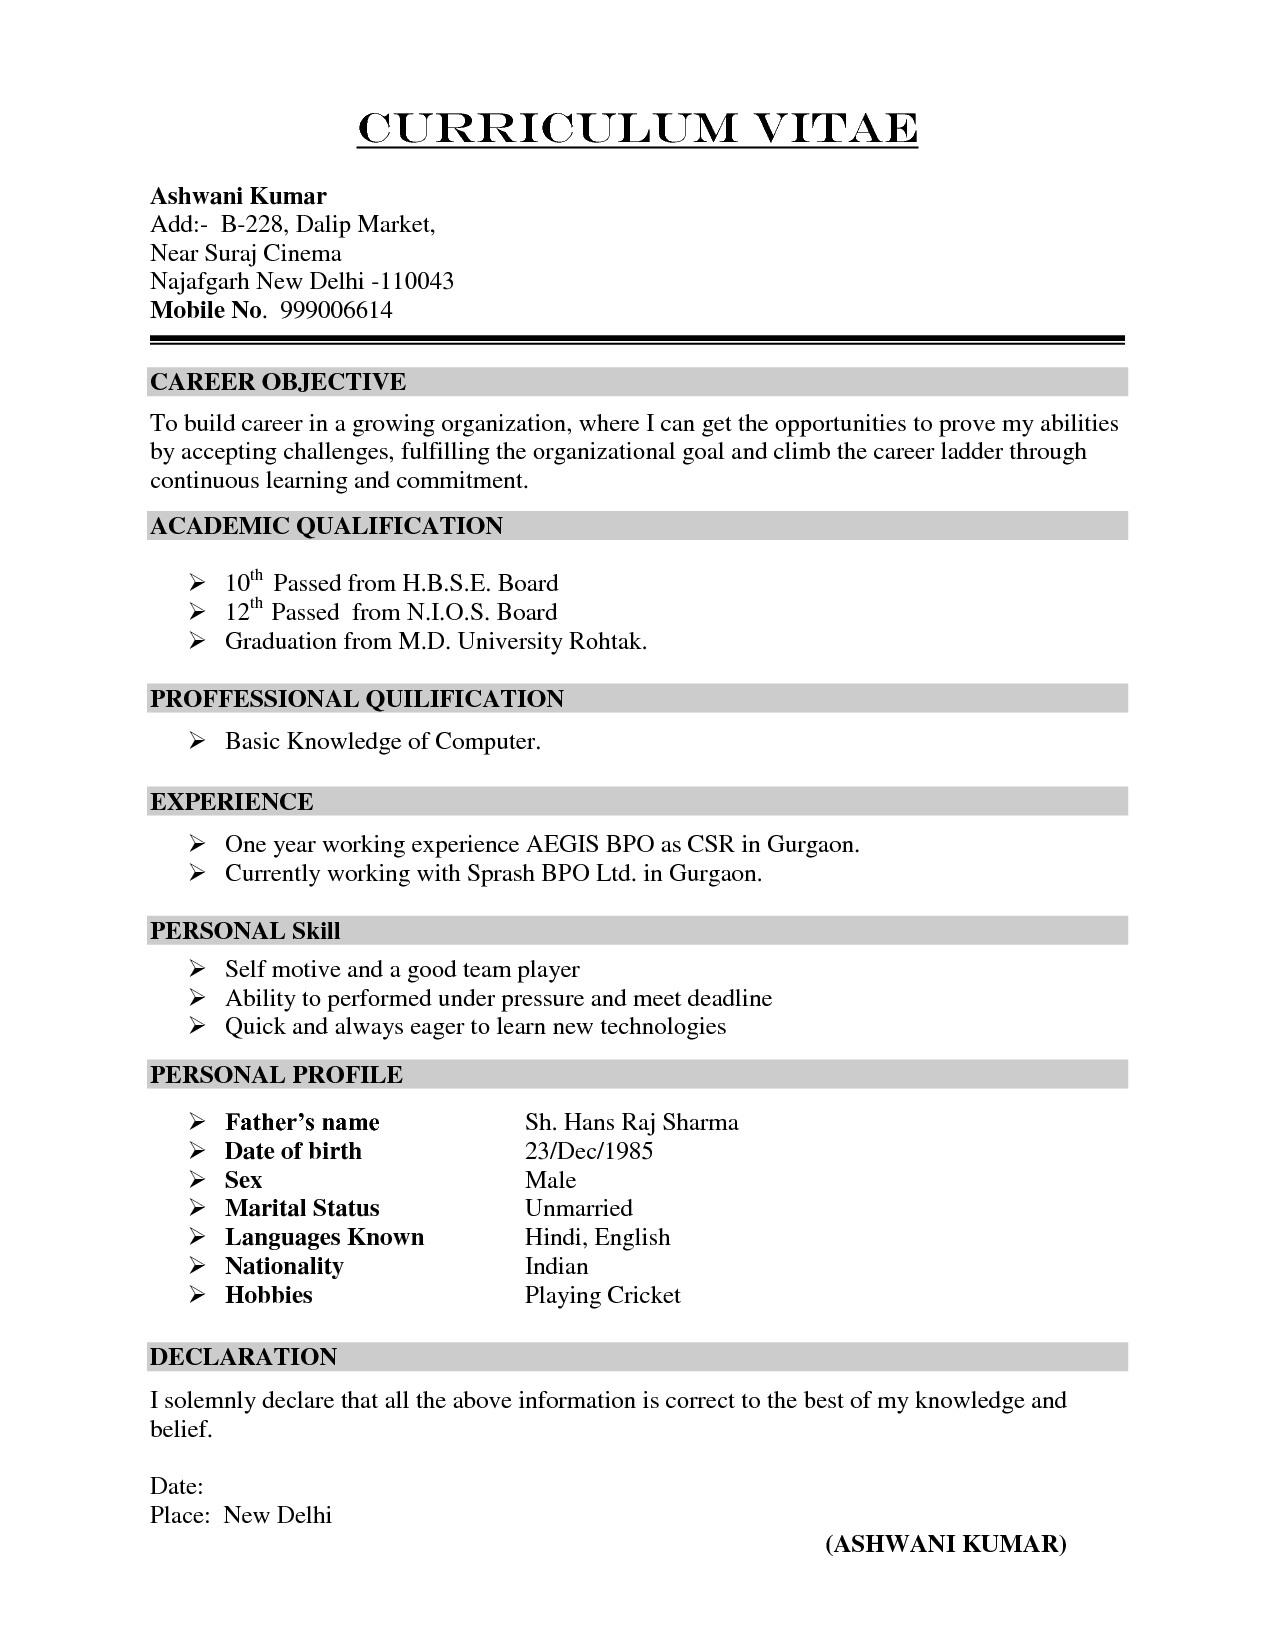 cv for year work experience template service resume cv for year 10 work experience template cv template examples writing a cv curriculum vitae cv